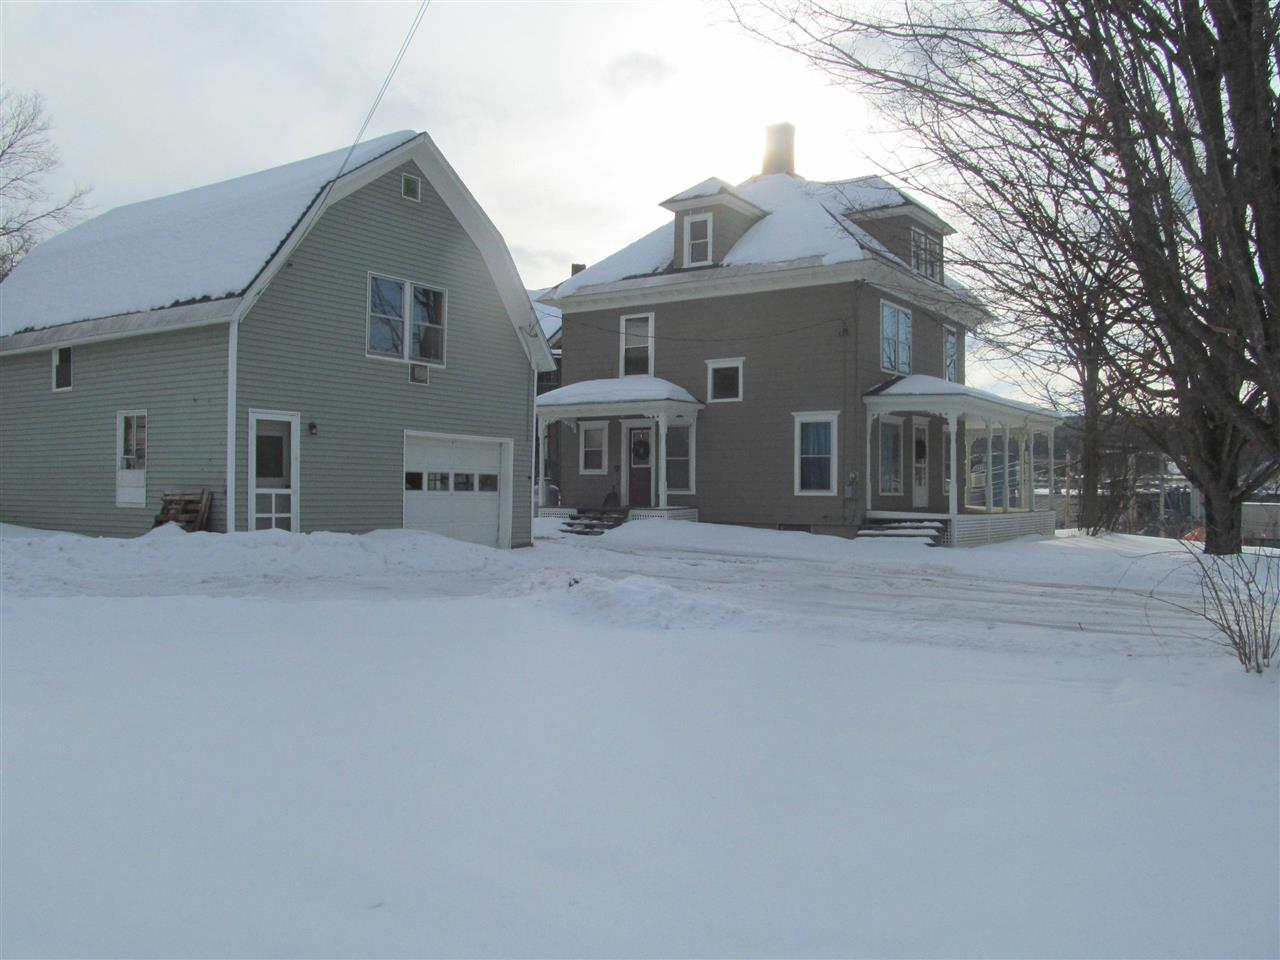 3 south st orleans vt 05860 in county mls 4617589 for Garage ad orleans